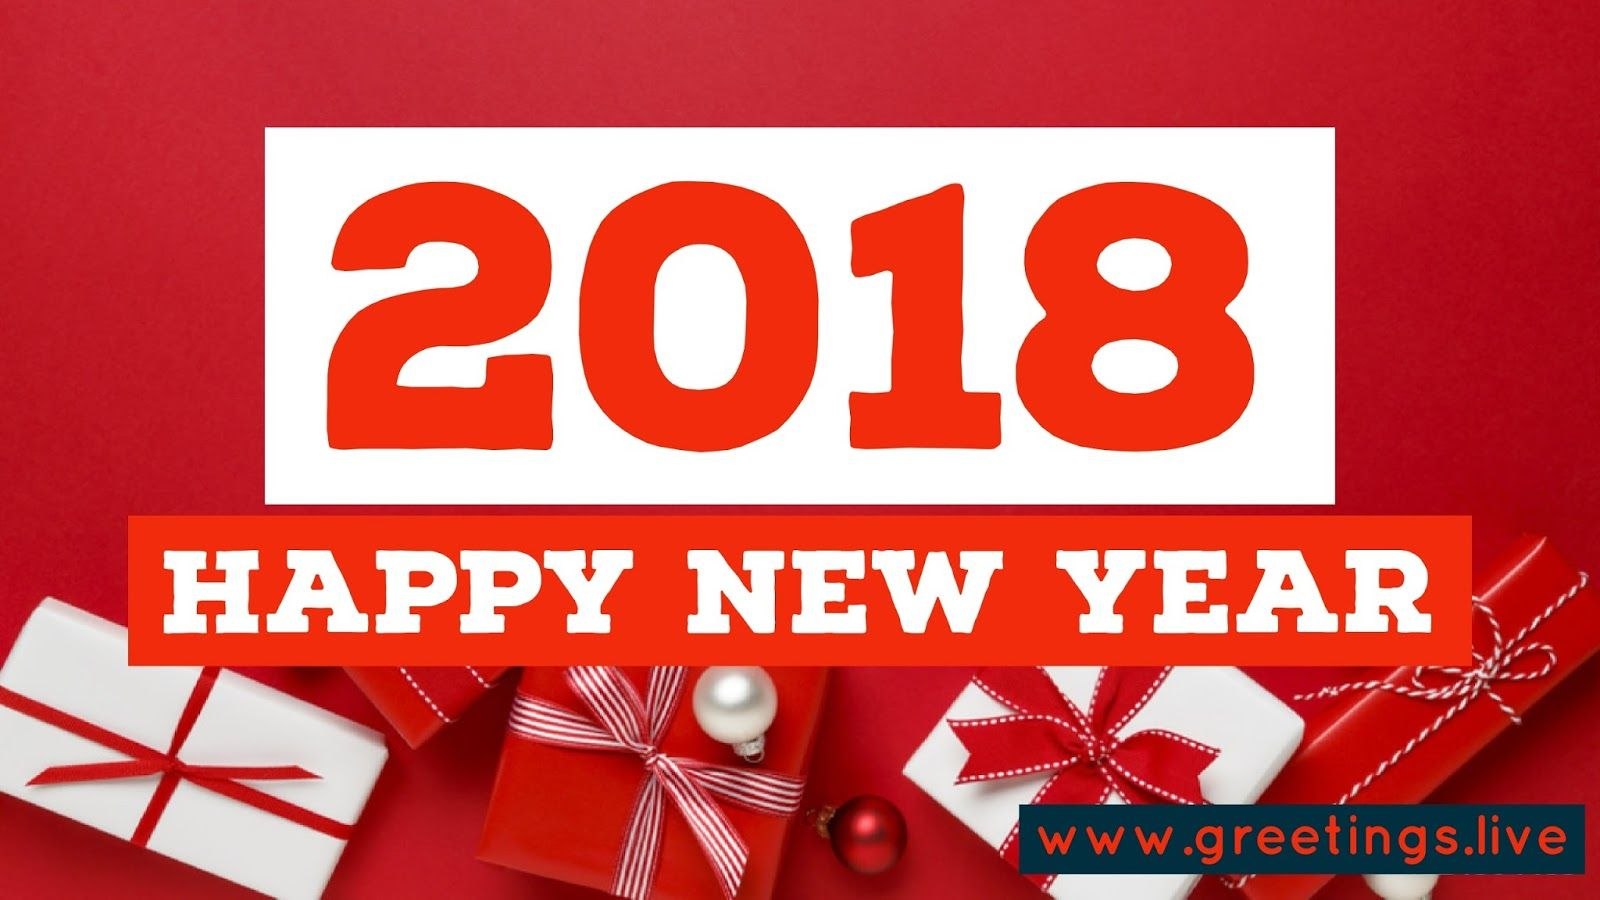 English Greetings on New Year 2018 New year 2018